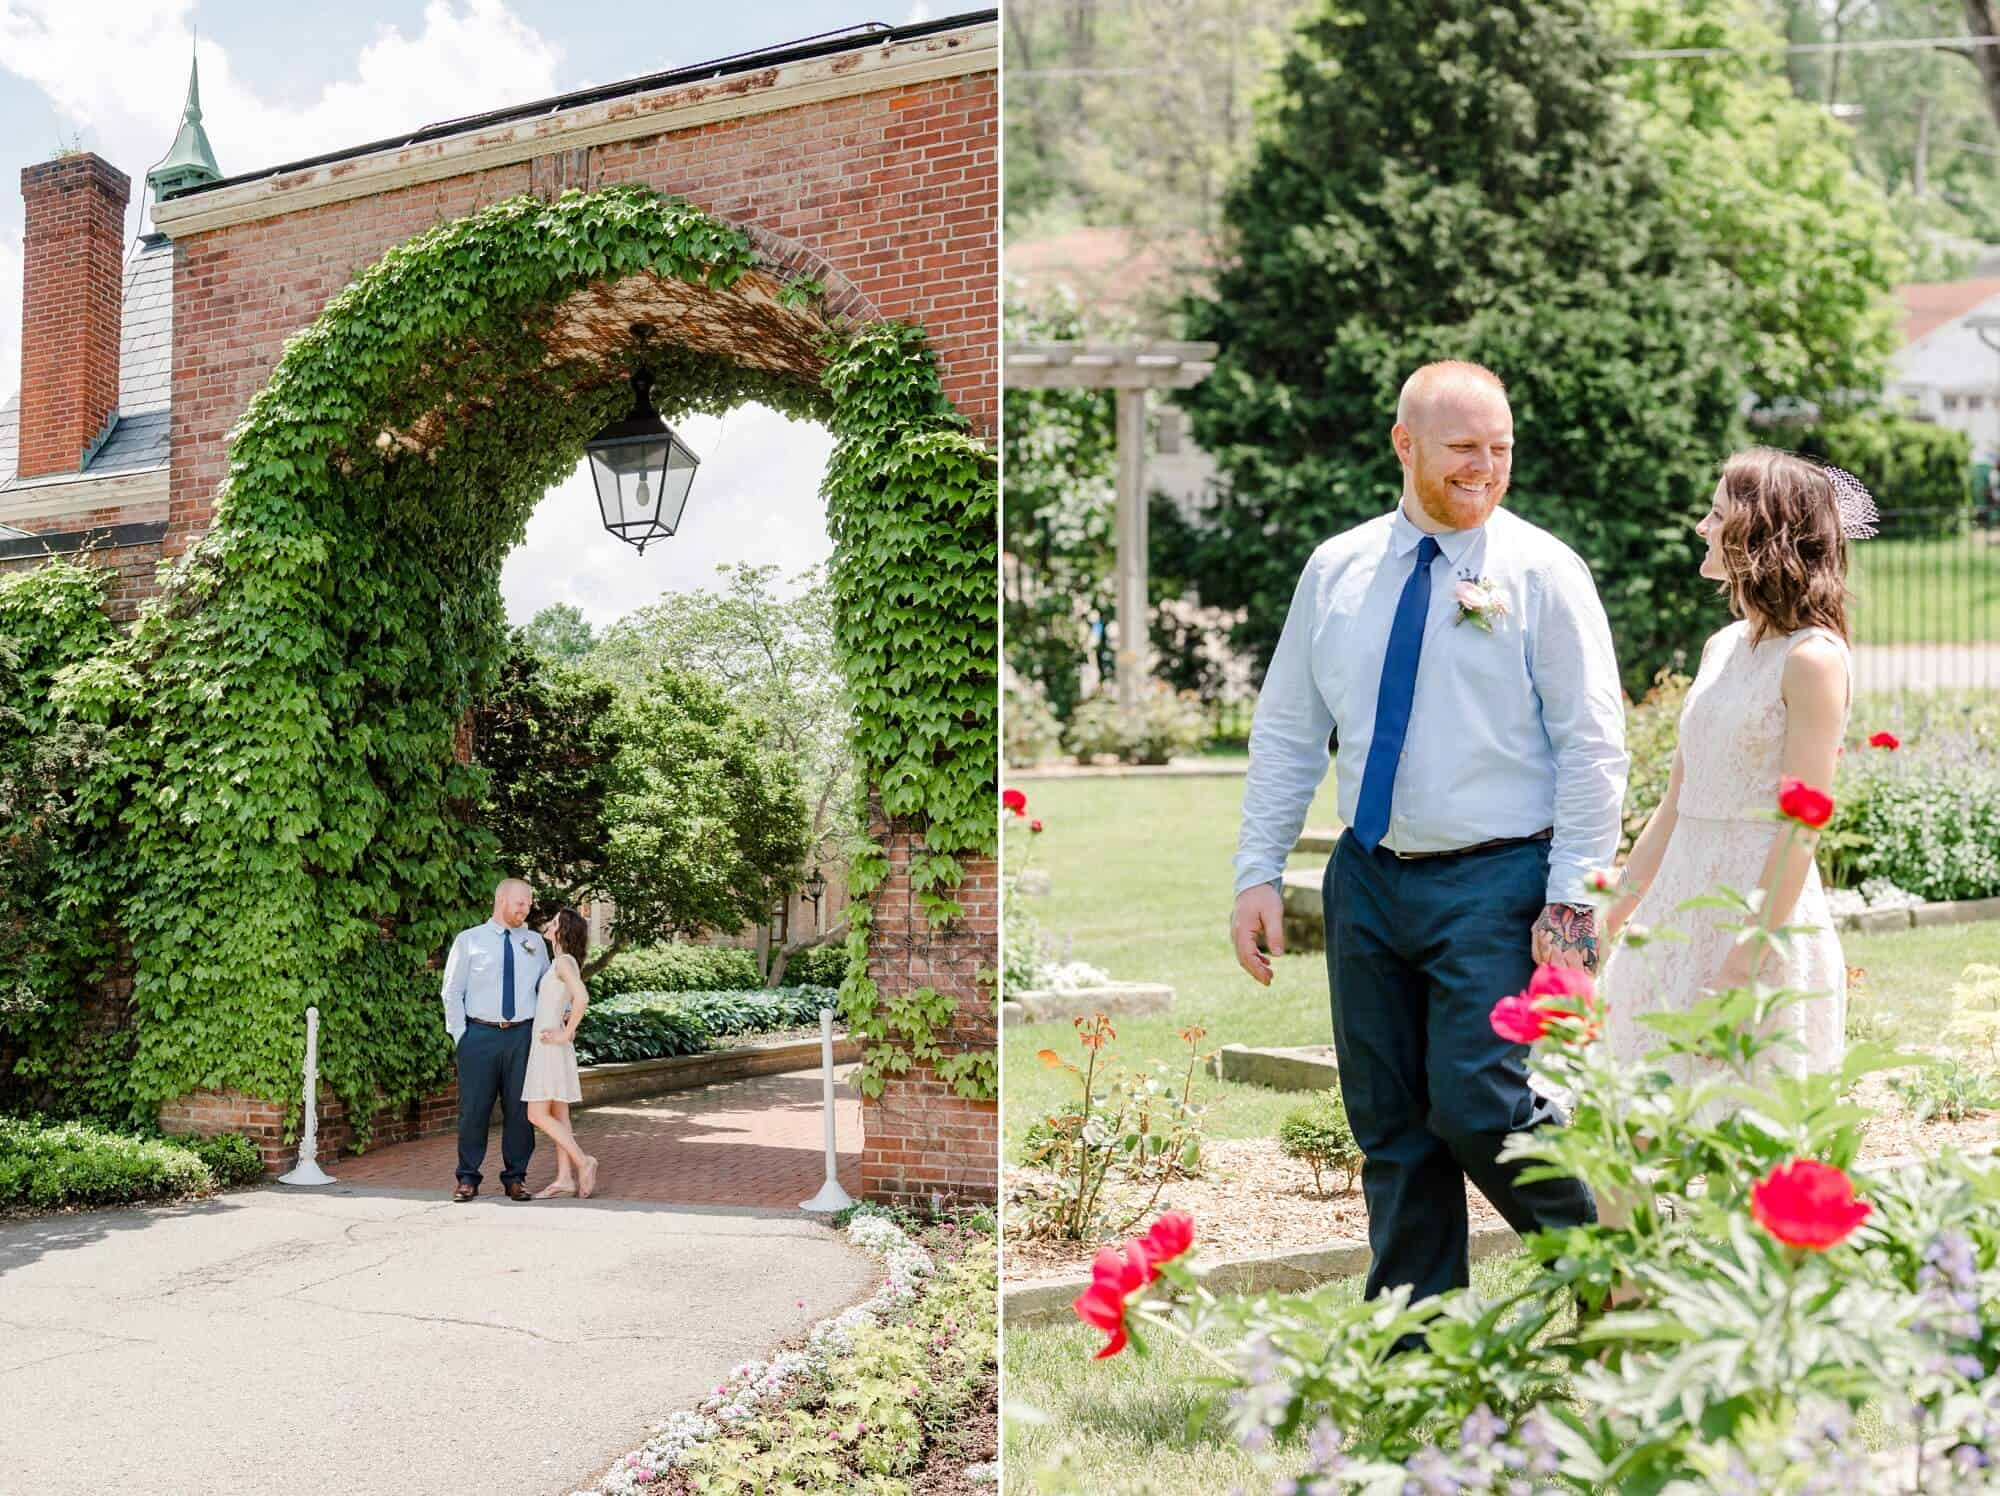 bride and groom pose under ivy covered brick arch kingwood center gardens